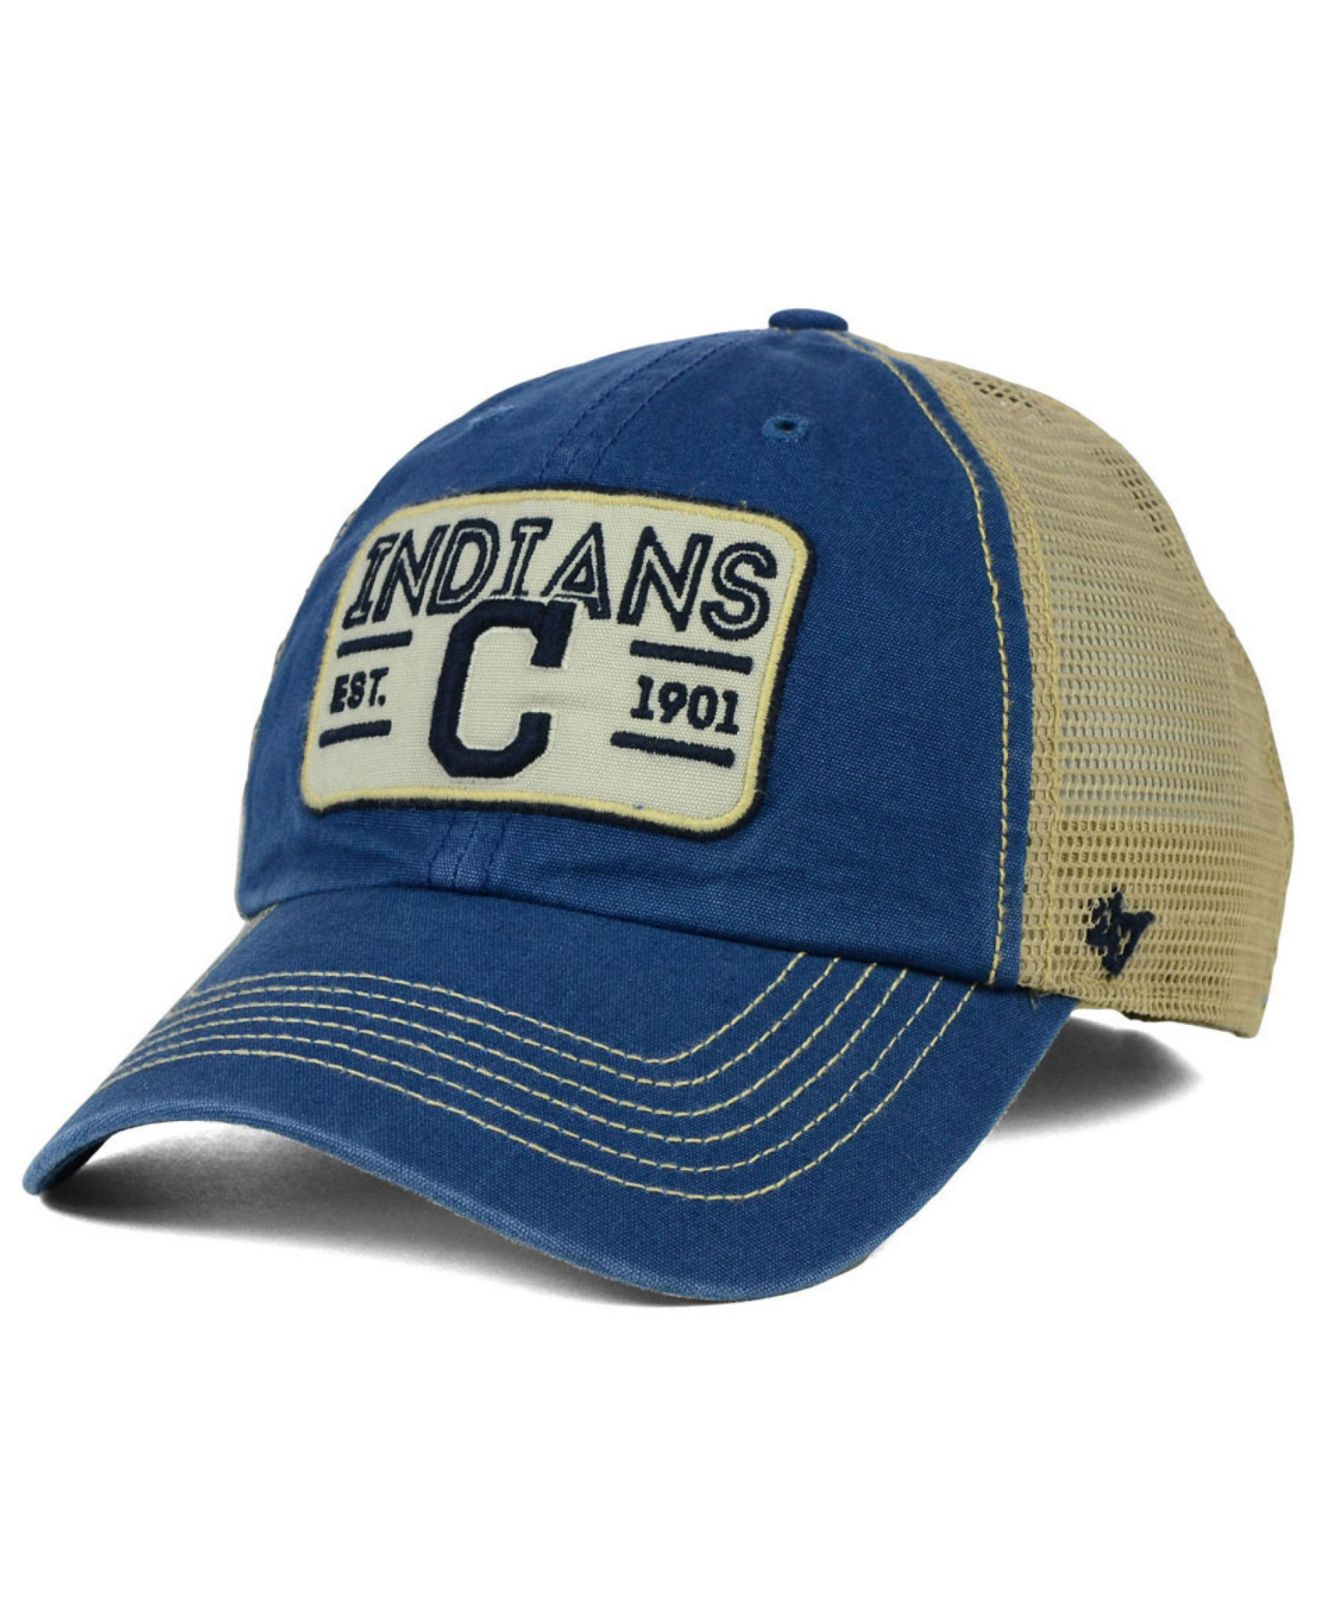 online store 621ae 6569f ... aliexpress lyst 47 brand cleveland indians goin yard mesh cap in blue  for men 85bc2 16e16